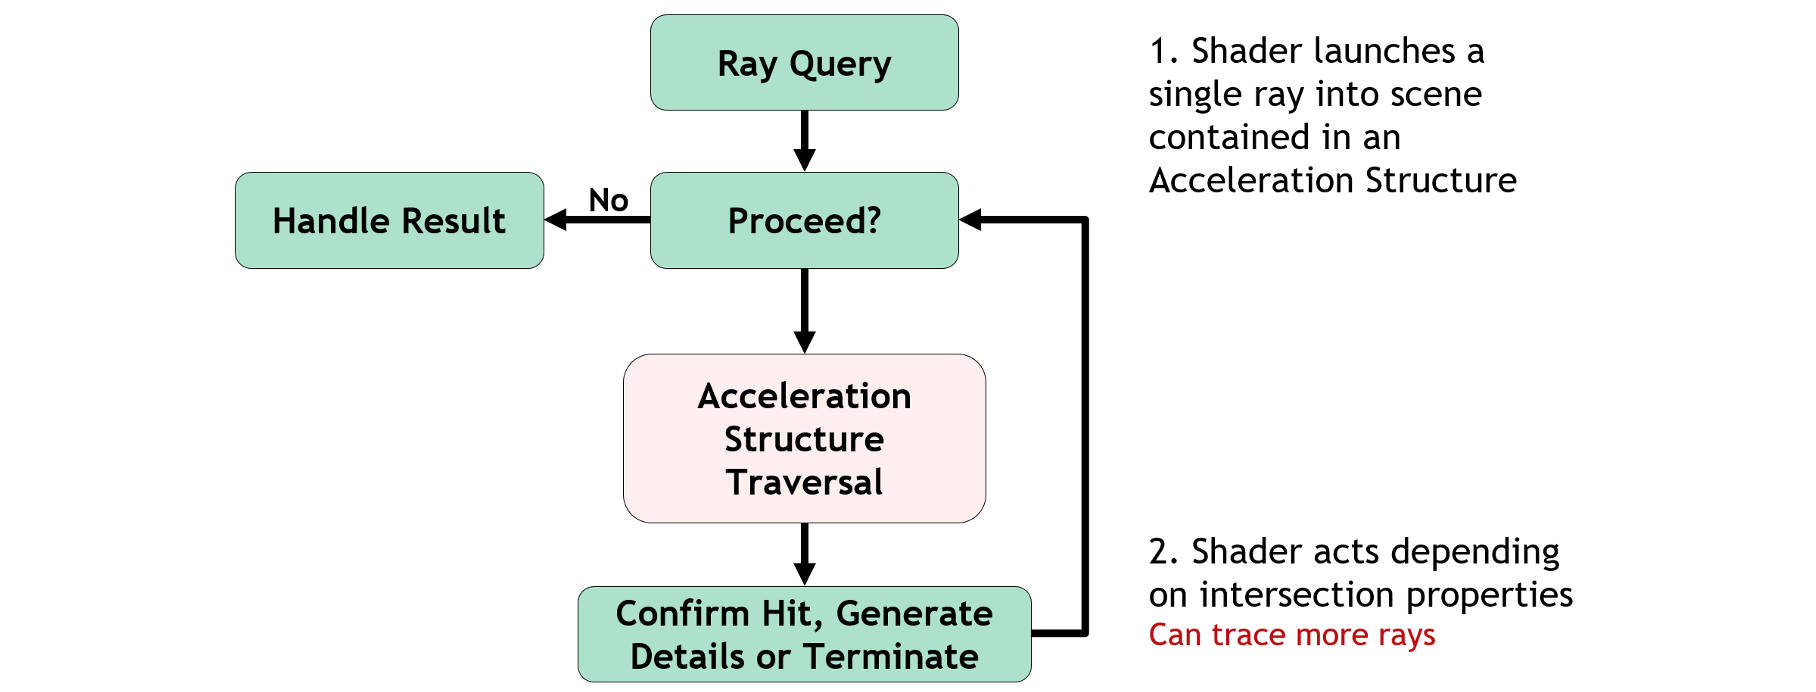 Ray Queries